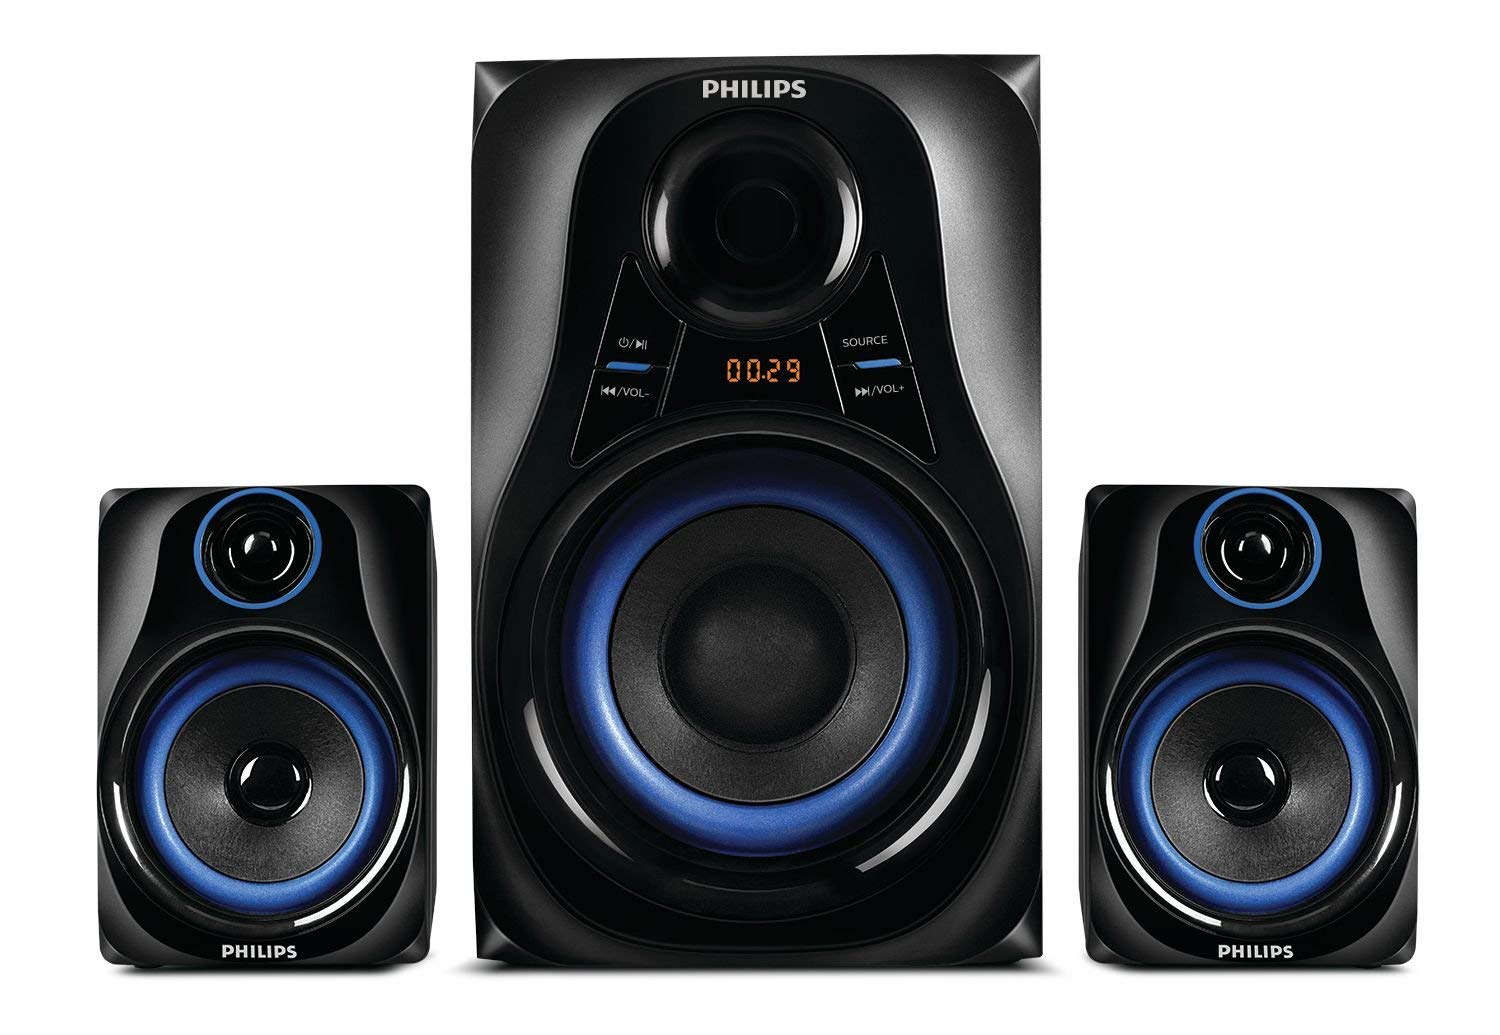 philips dhoom home theatre speaker